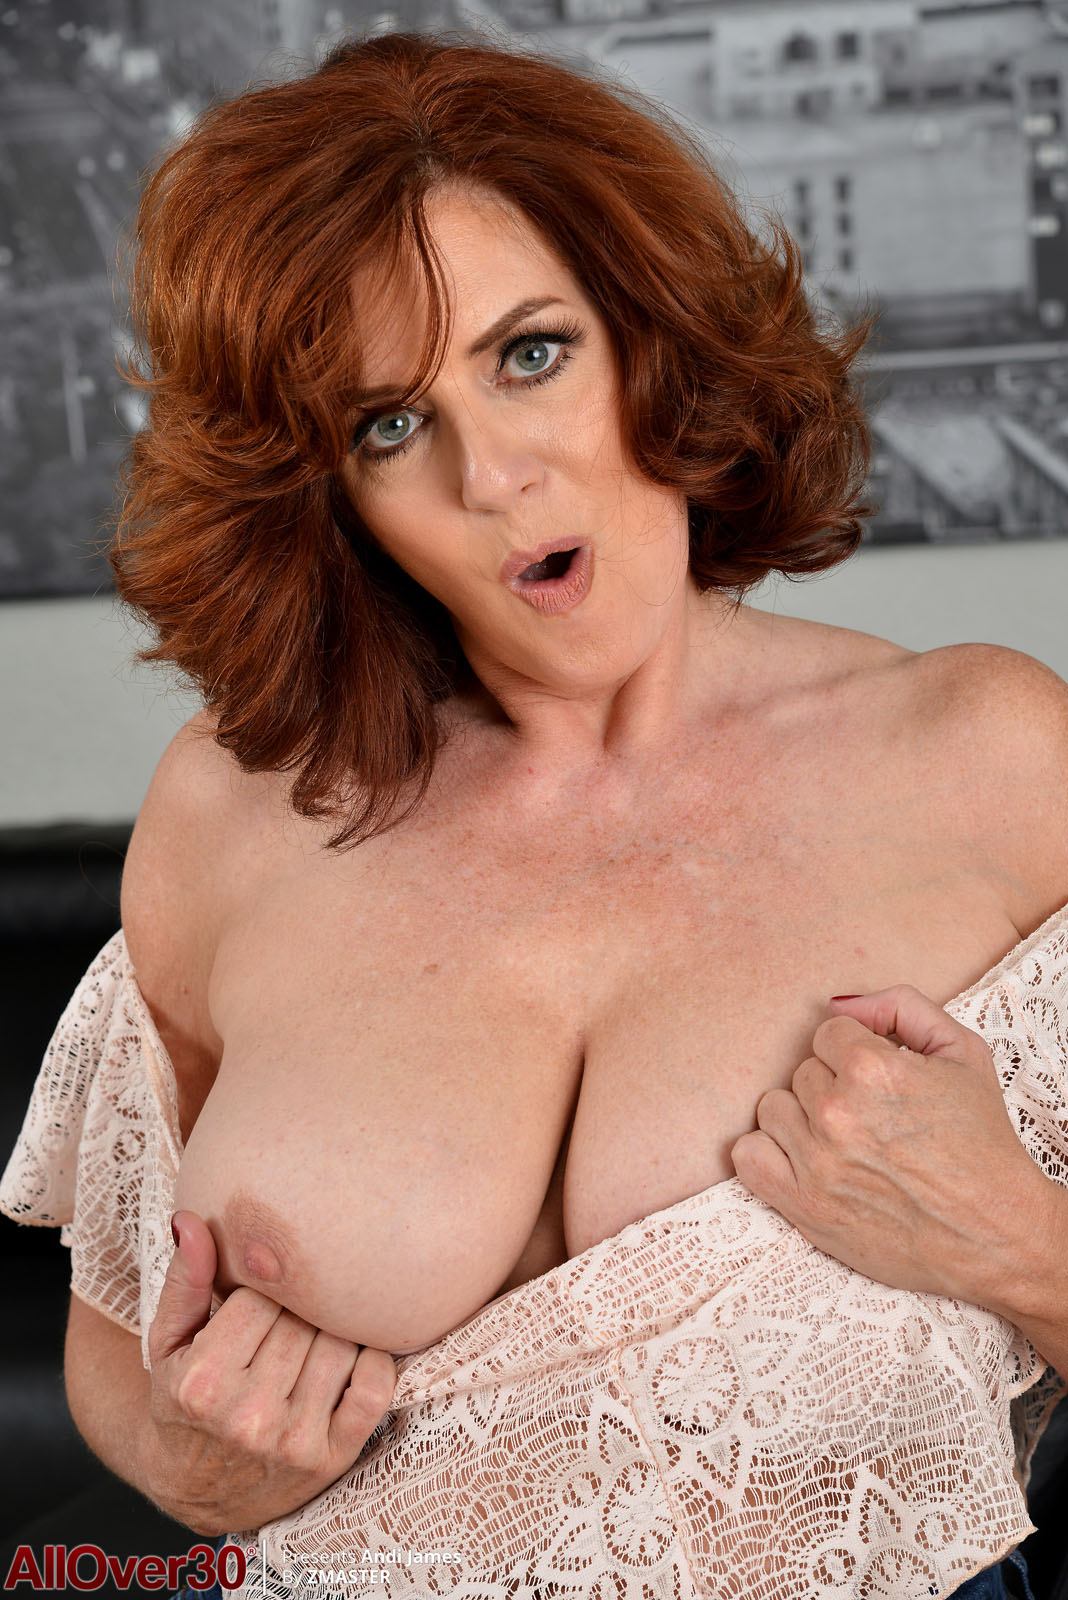 All over 30 milf